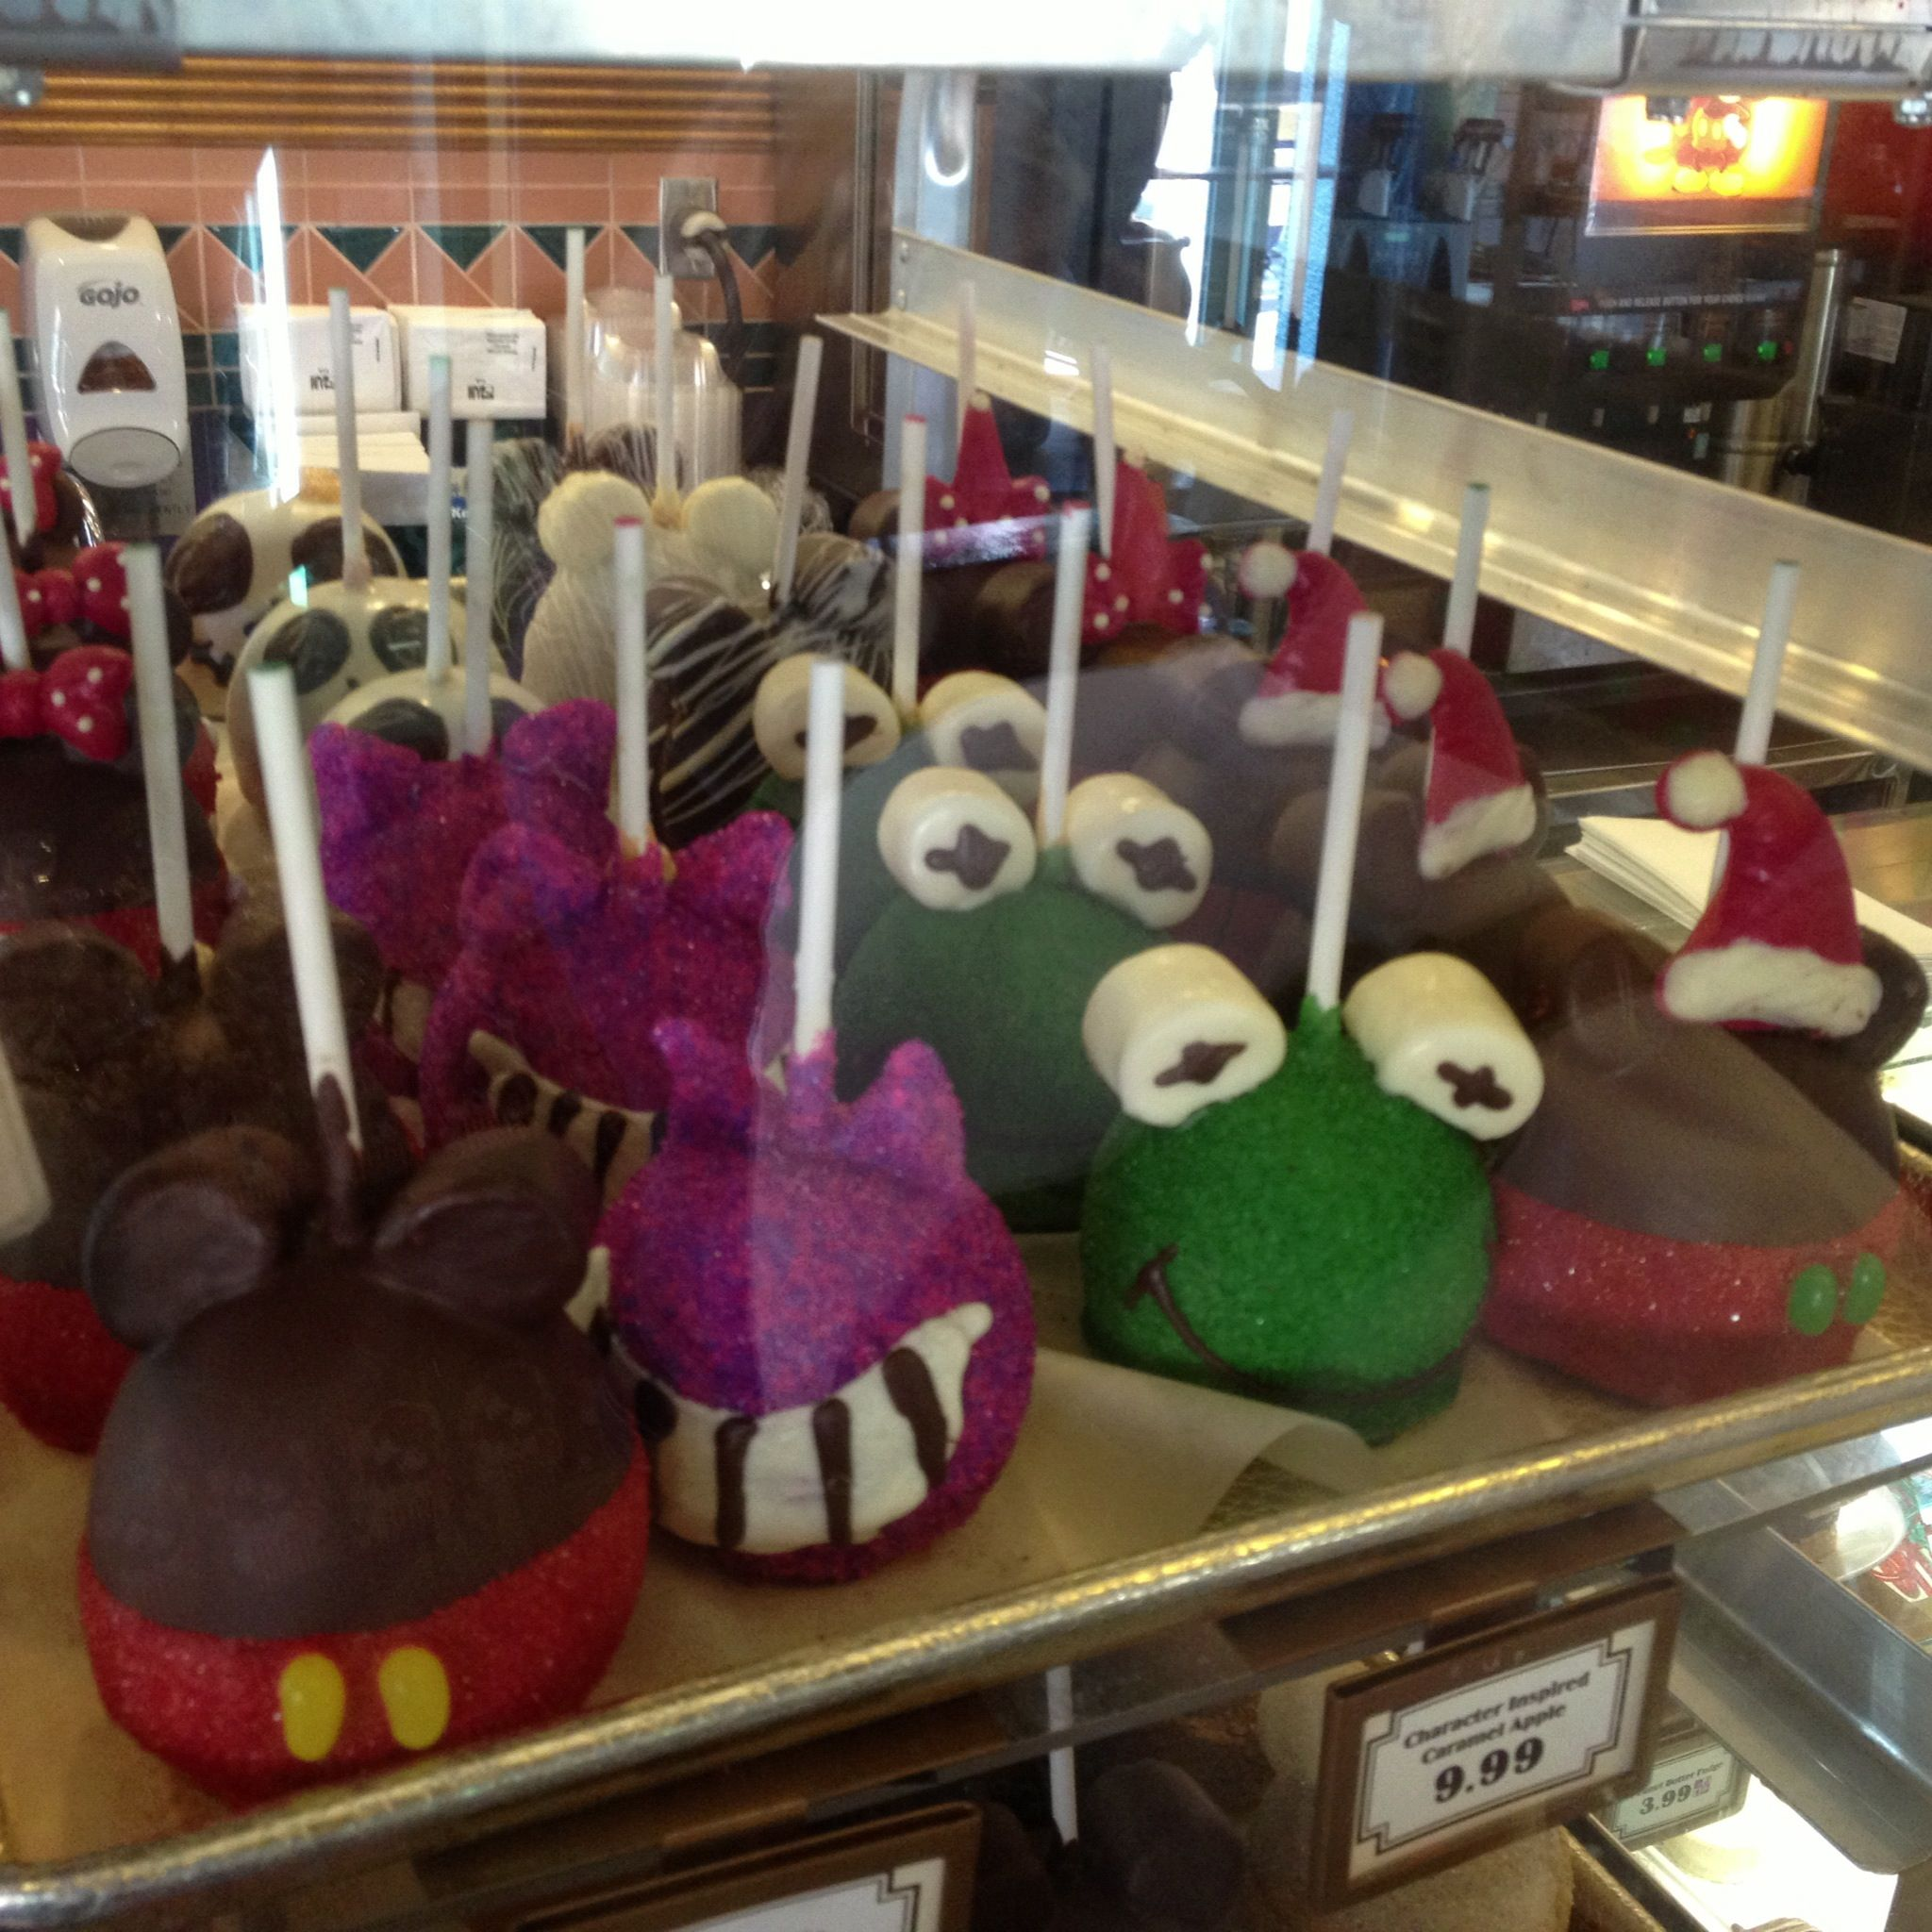 Disney Character Candy Apples At Sweet Spells In Disney S Hollywood Studios Disney Sweets Disney World Food Gourmet Apples